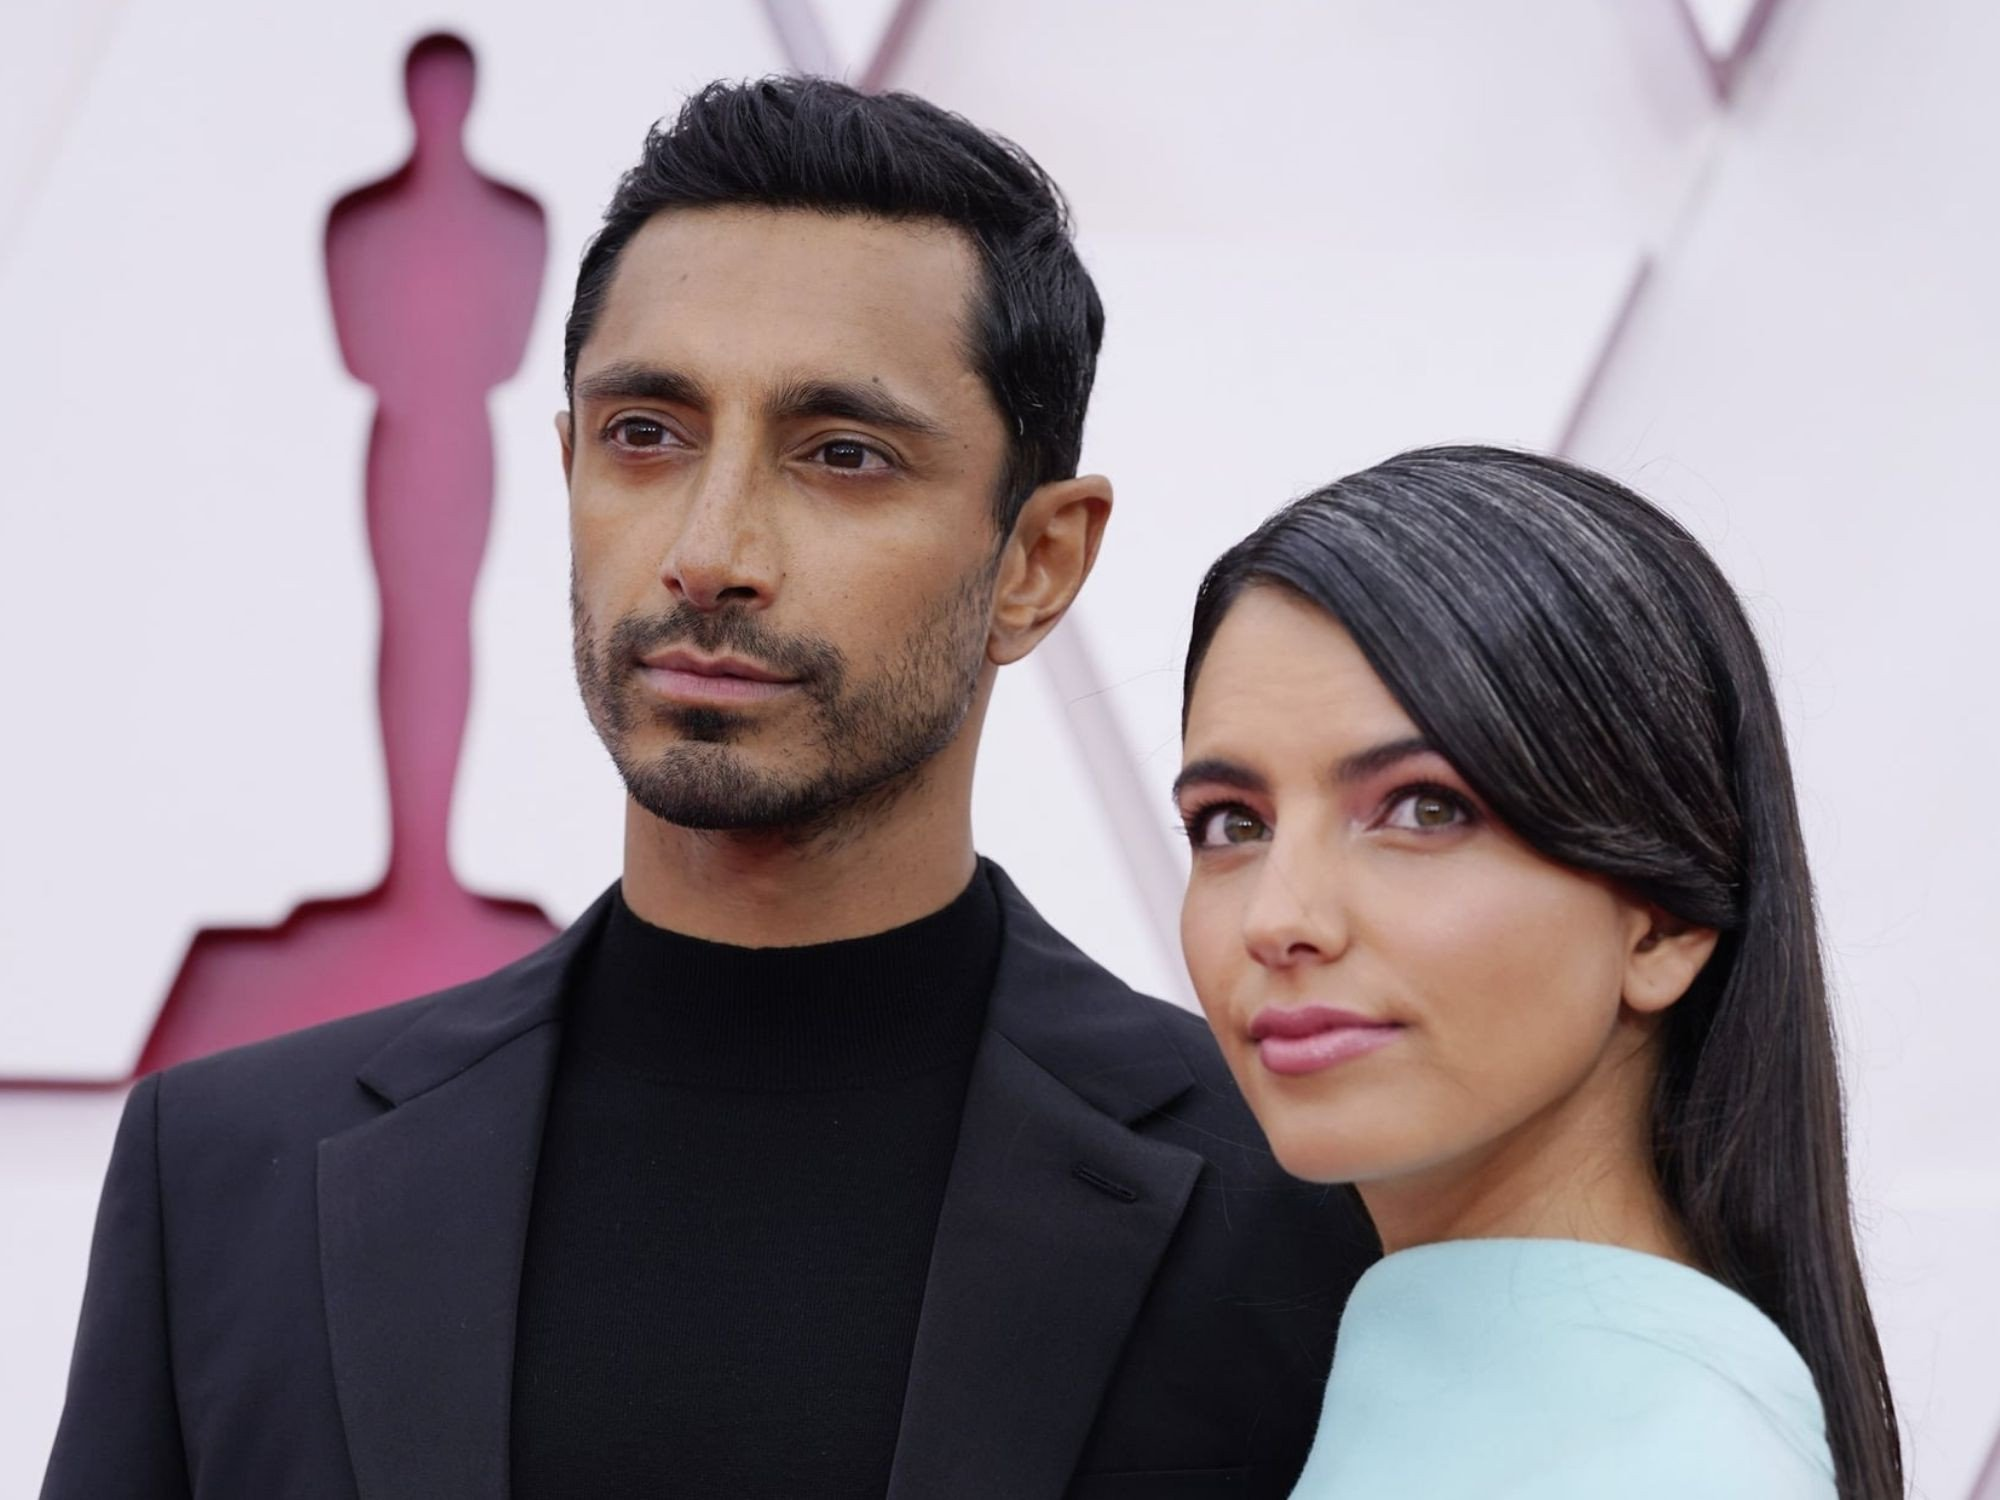 Talk of the Town Riz Ahmed fixing wife hair at the Oscars Video goes viral